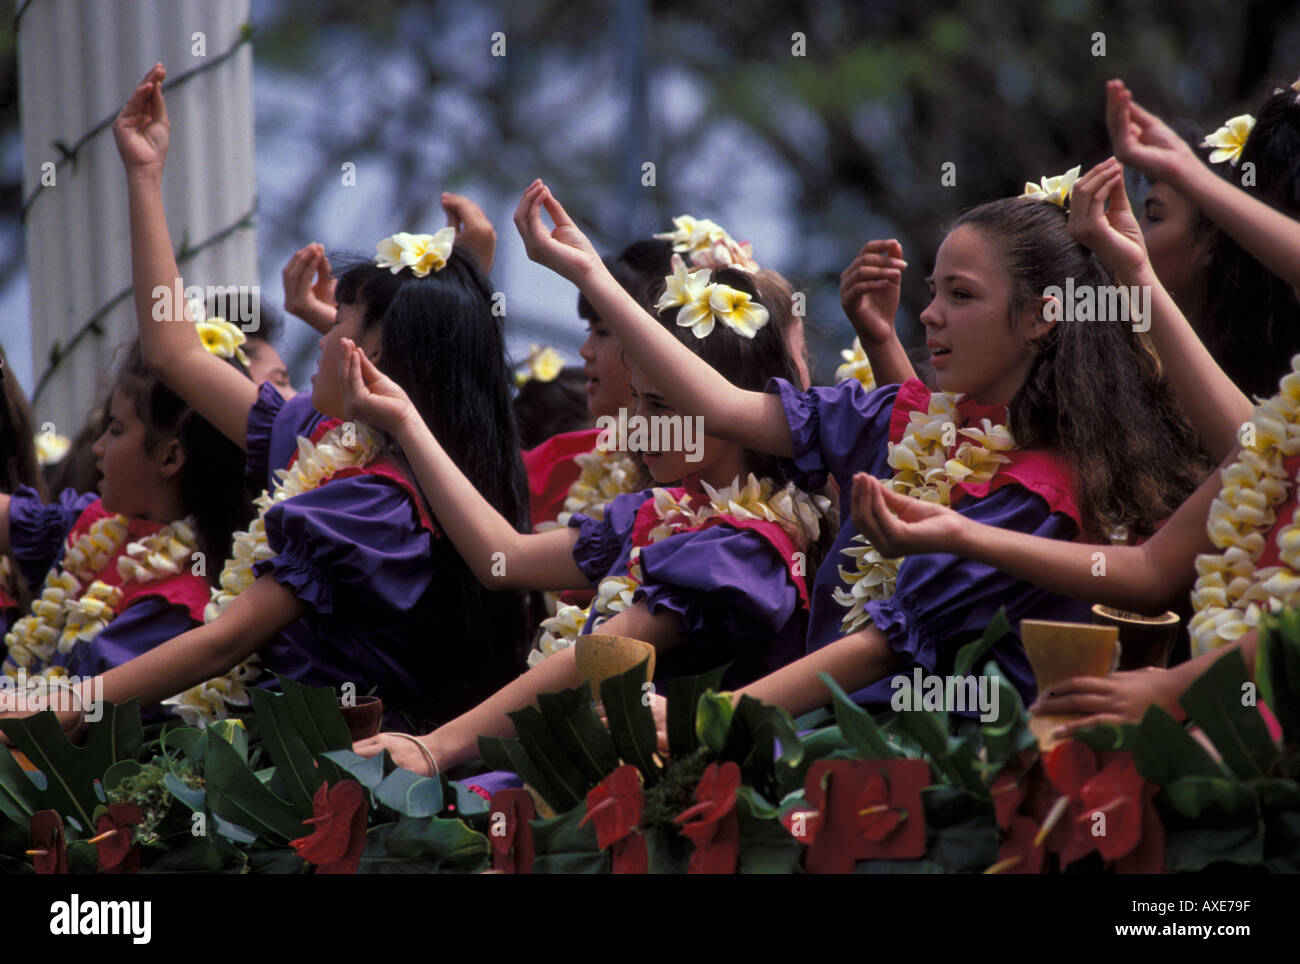 Hula dancer girls on float with leis Merry Monarch Festival parade Hilo Big Island Hawaii - Stock Image